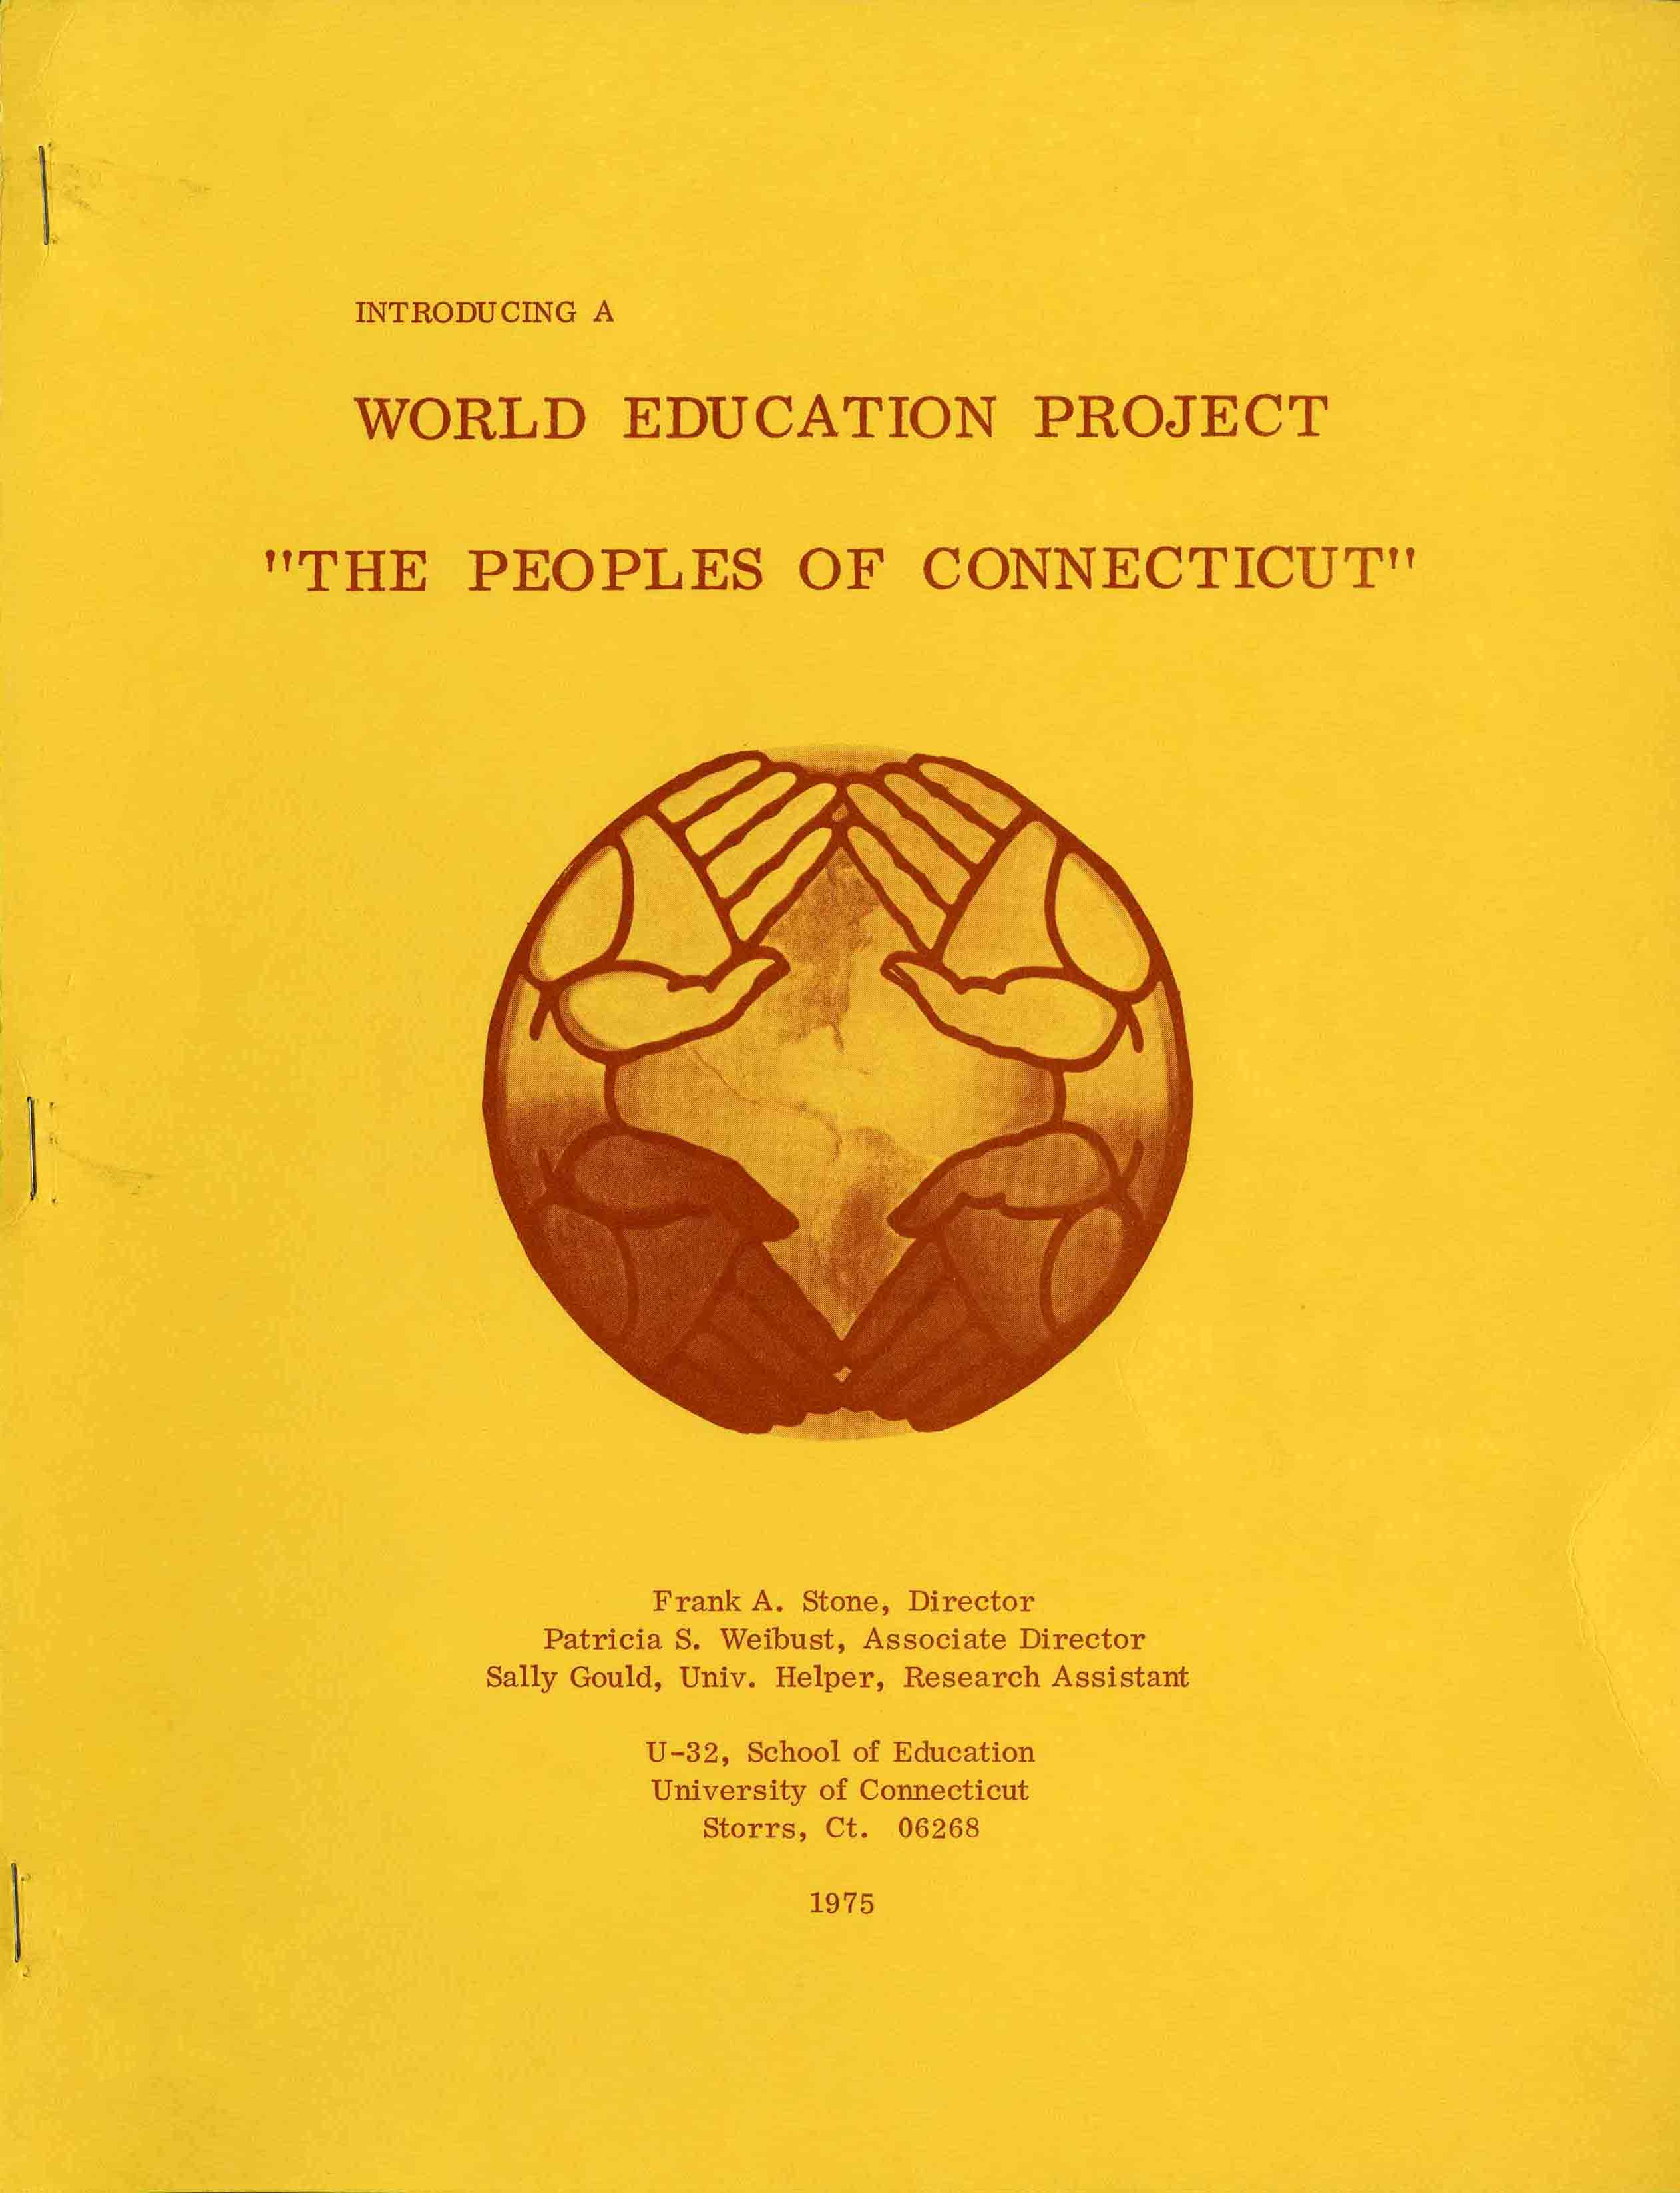 World Education Project pamphlet